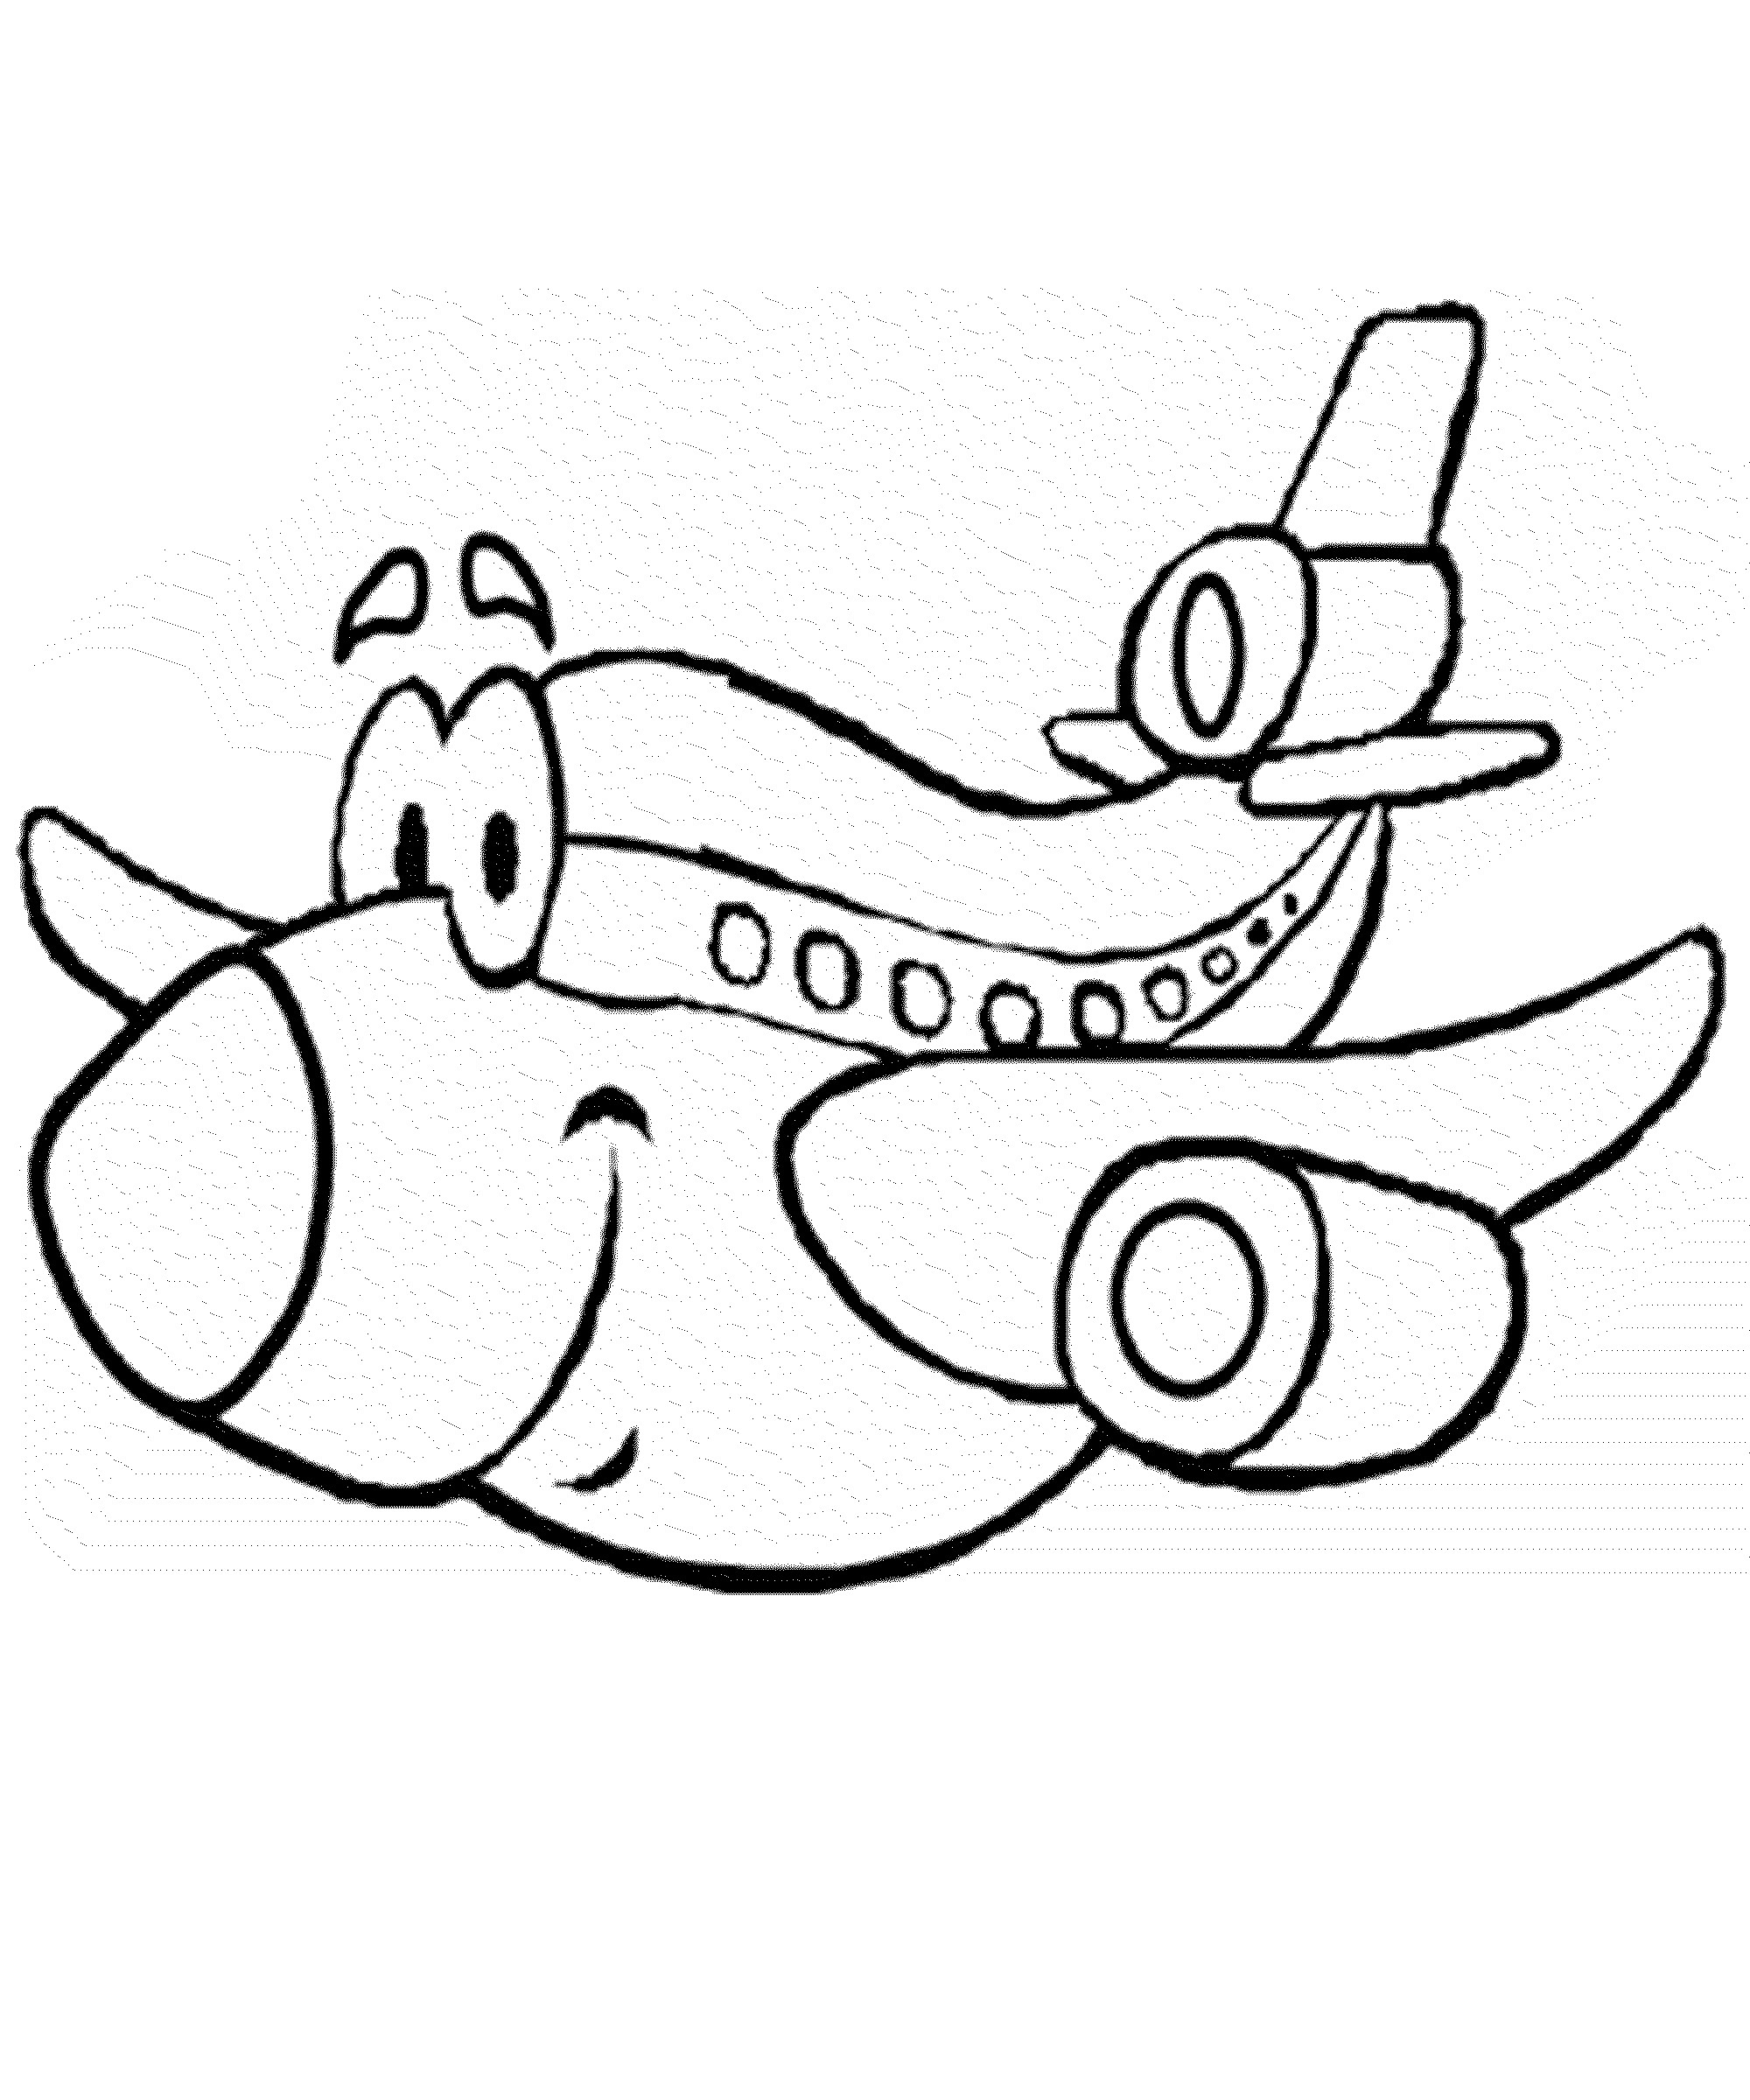 2000x2400 Inspiration Vintage Airplane Coloring Pages Printable Kids